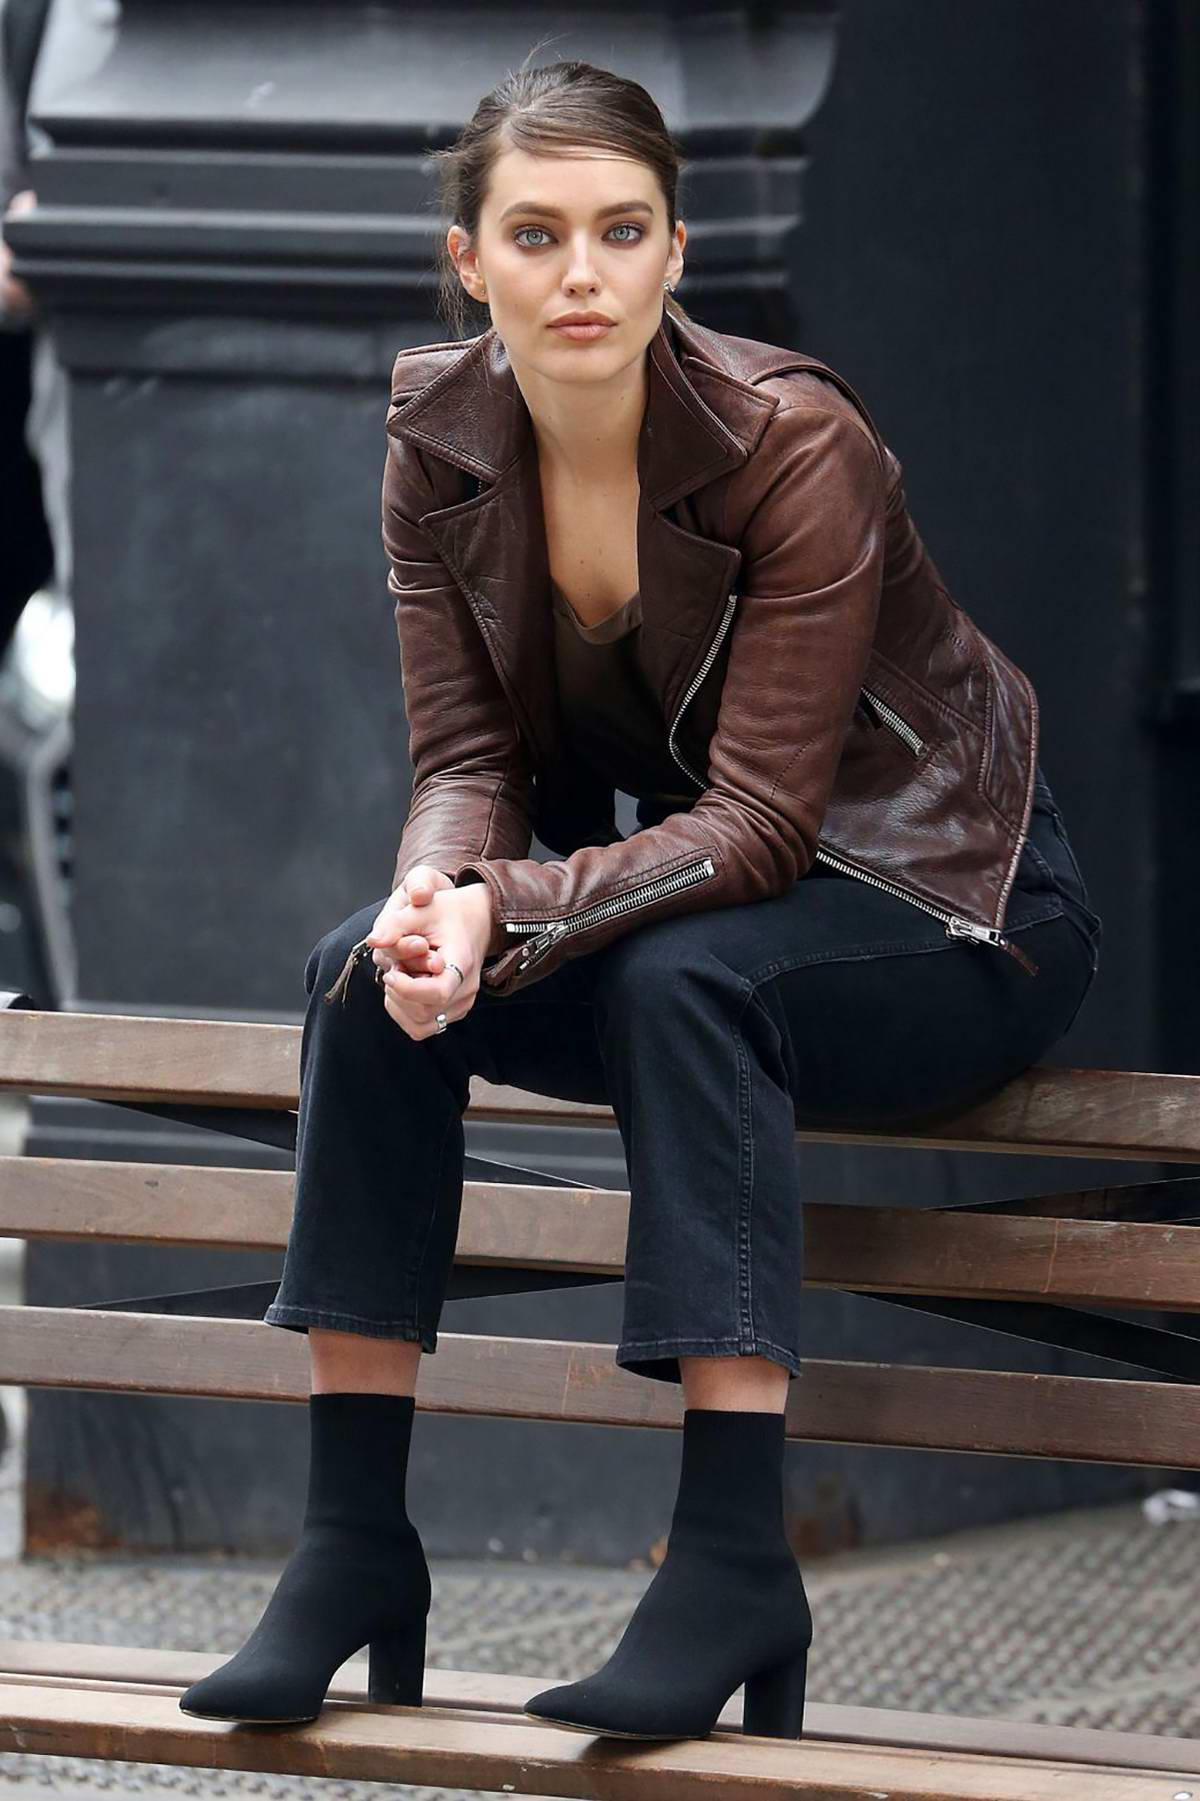 Emily DiDonato looks amazing in a brown leather jacket during a Maybelline photoshoot in New York City